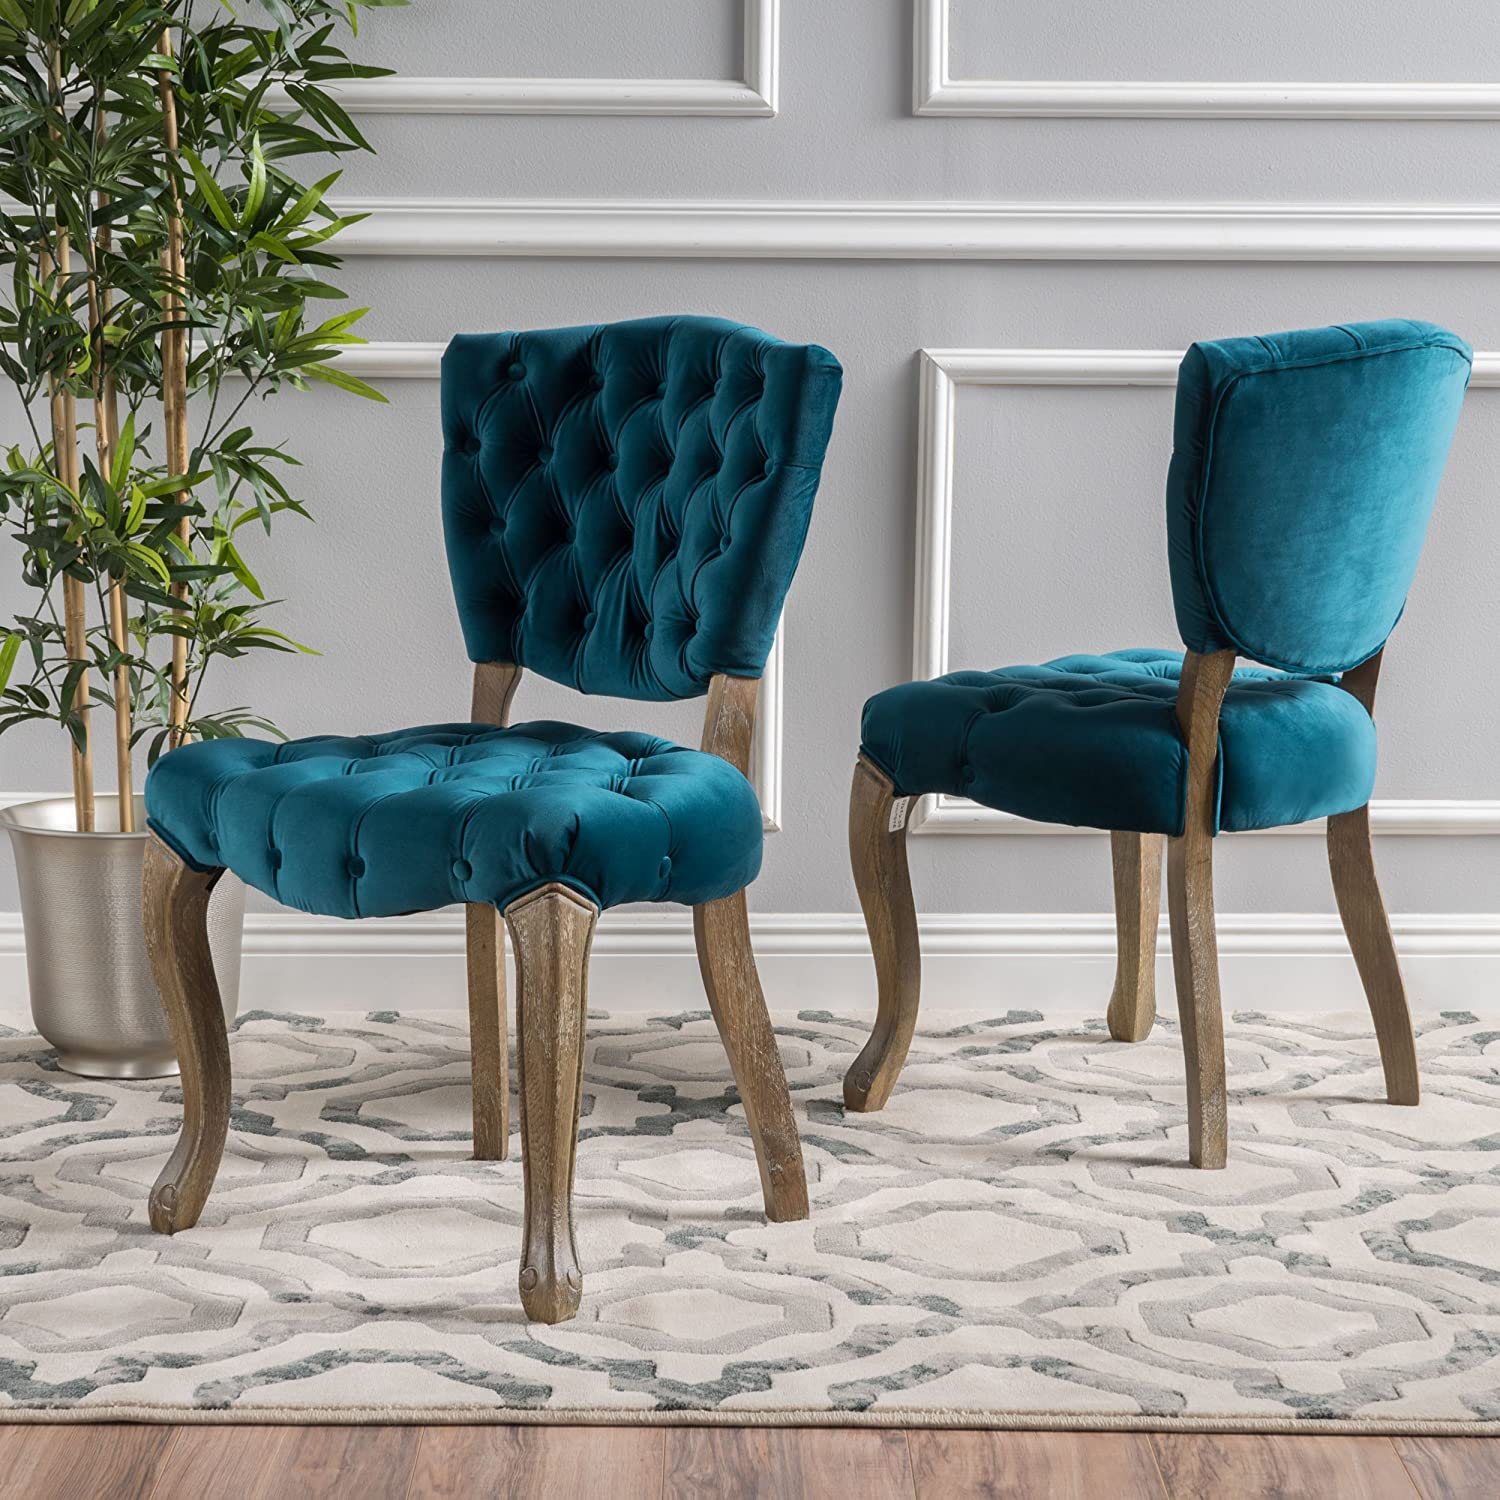 Christopher Knight Home 299587 Bates Tufted New Velvet Fabric Dining Chairs (Set of 2), Dark Teal